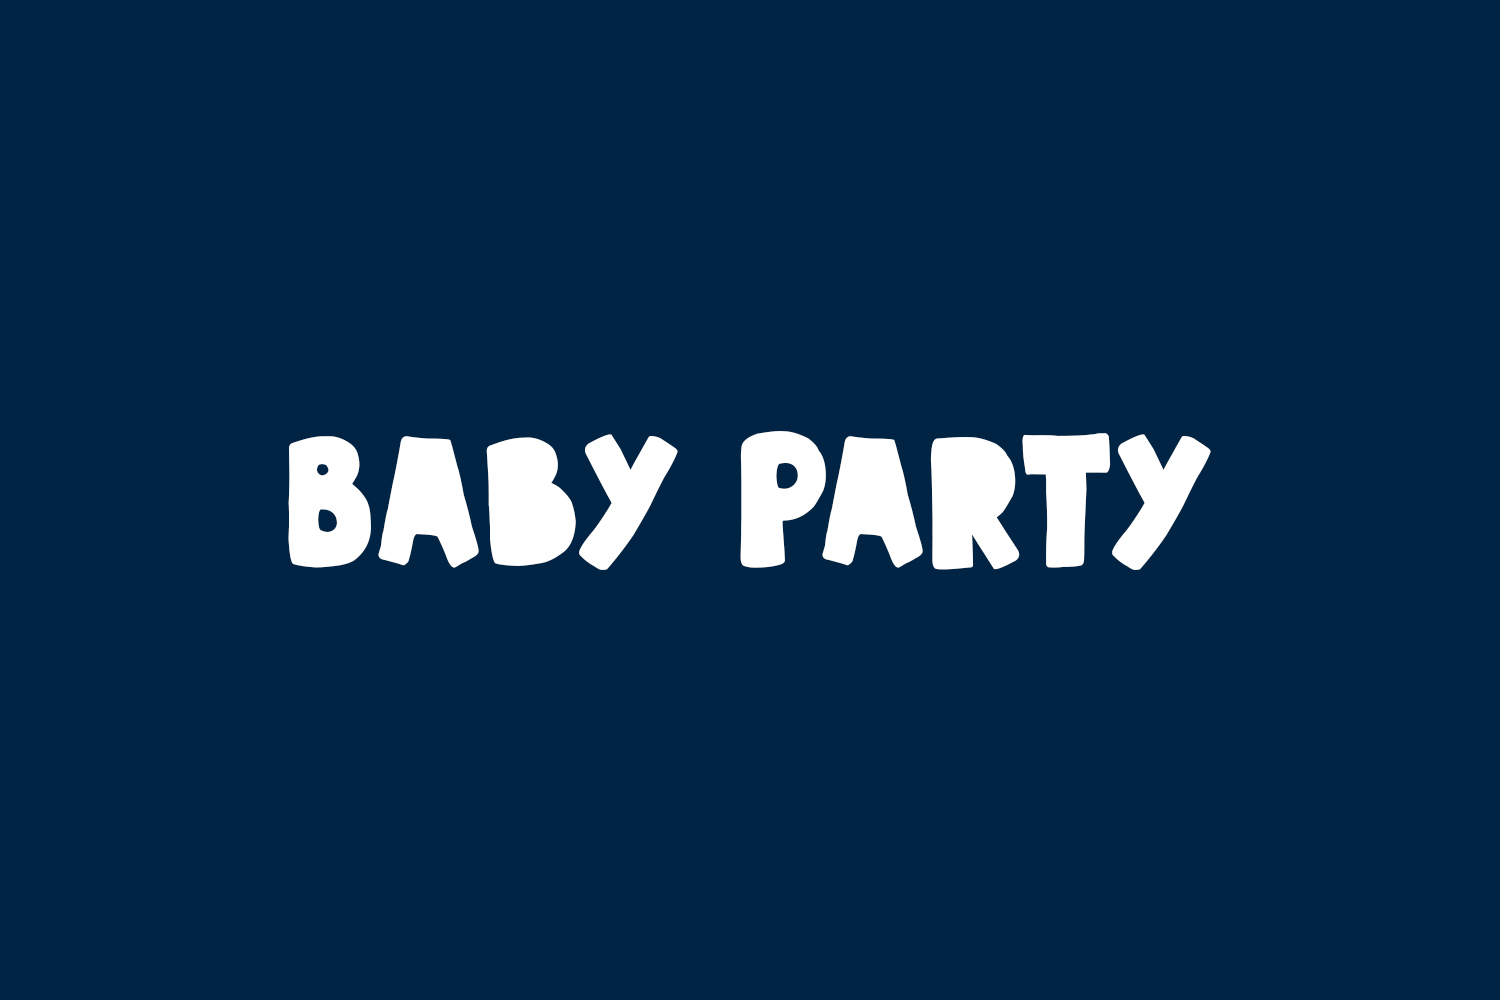 Baby Party Free Font